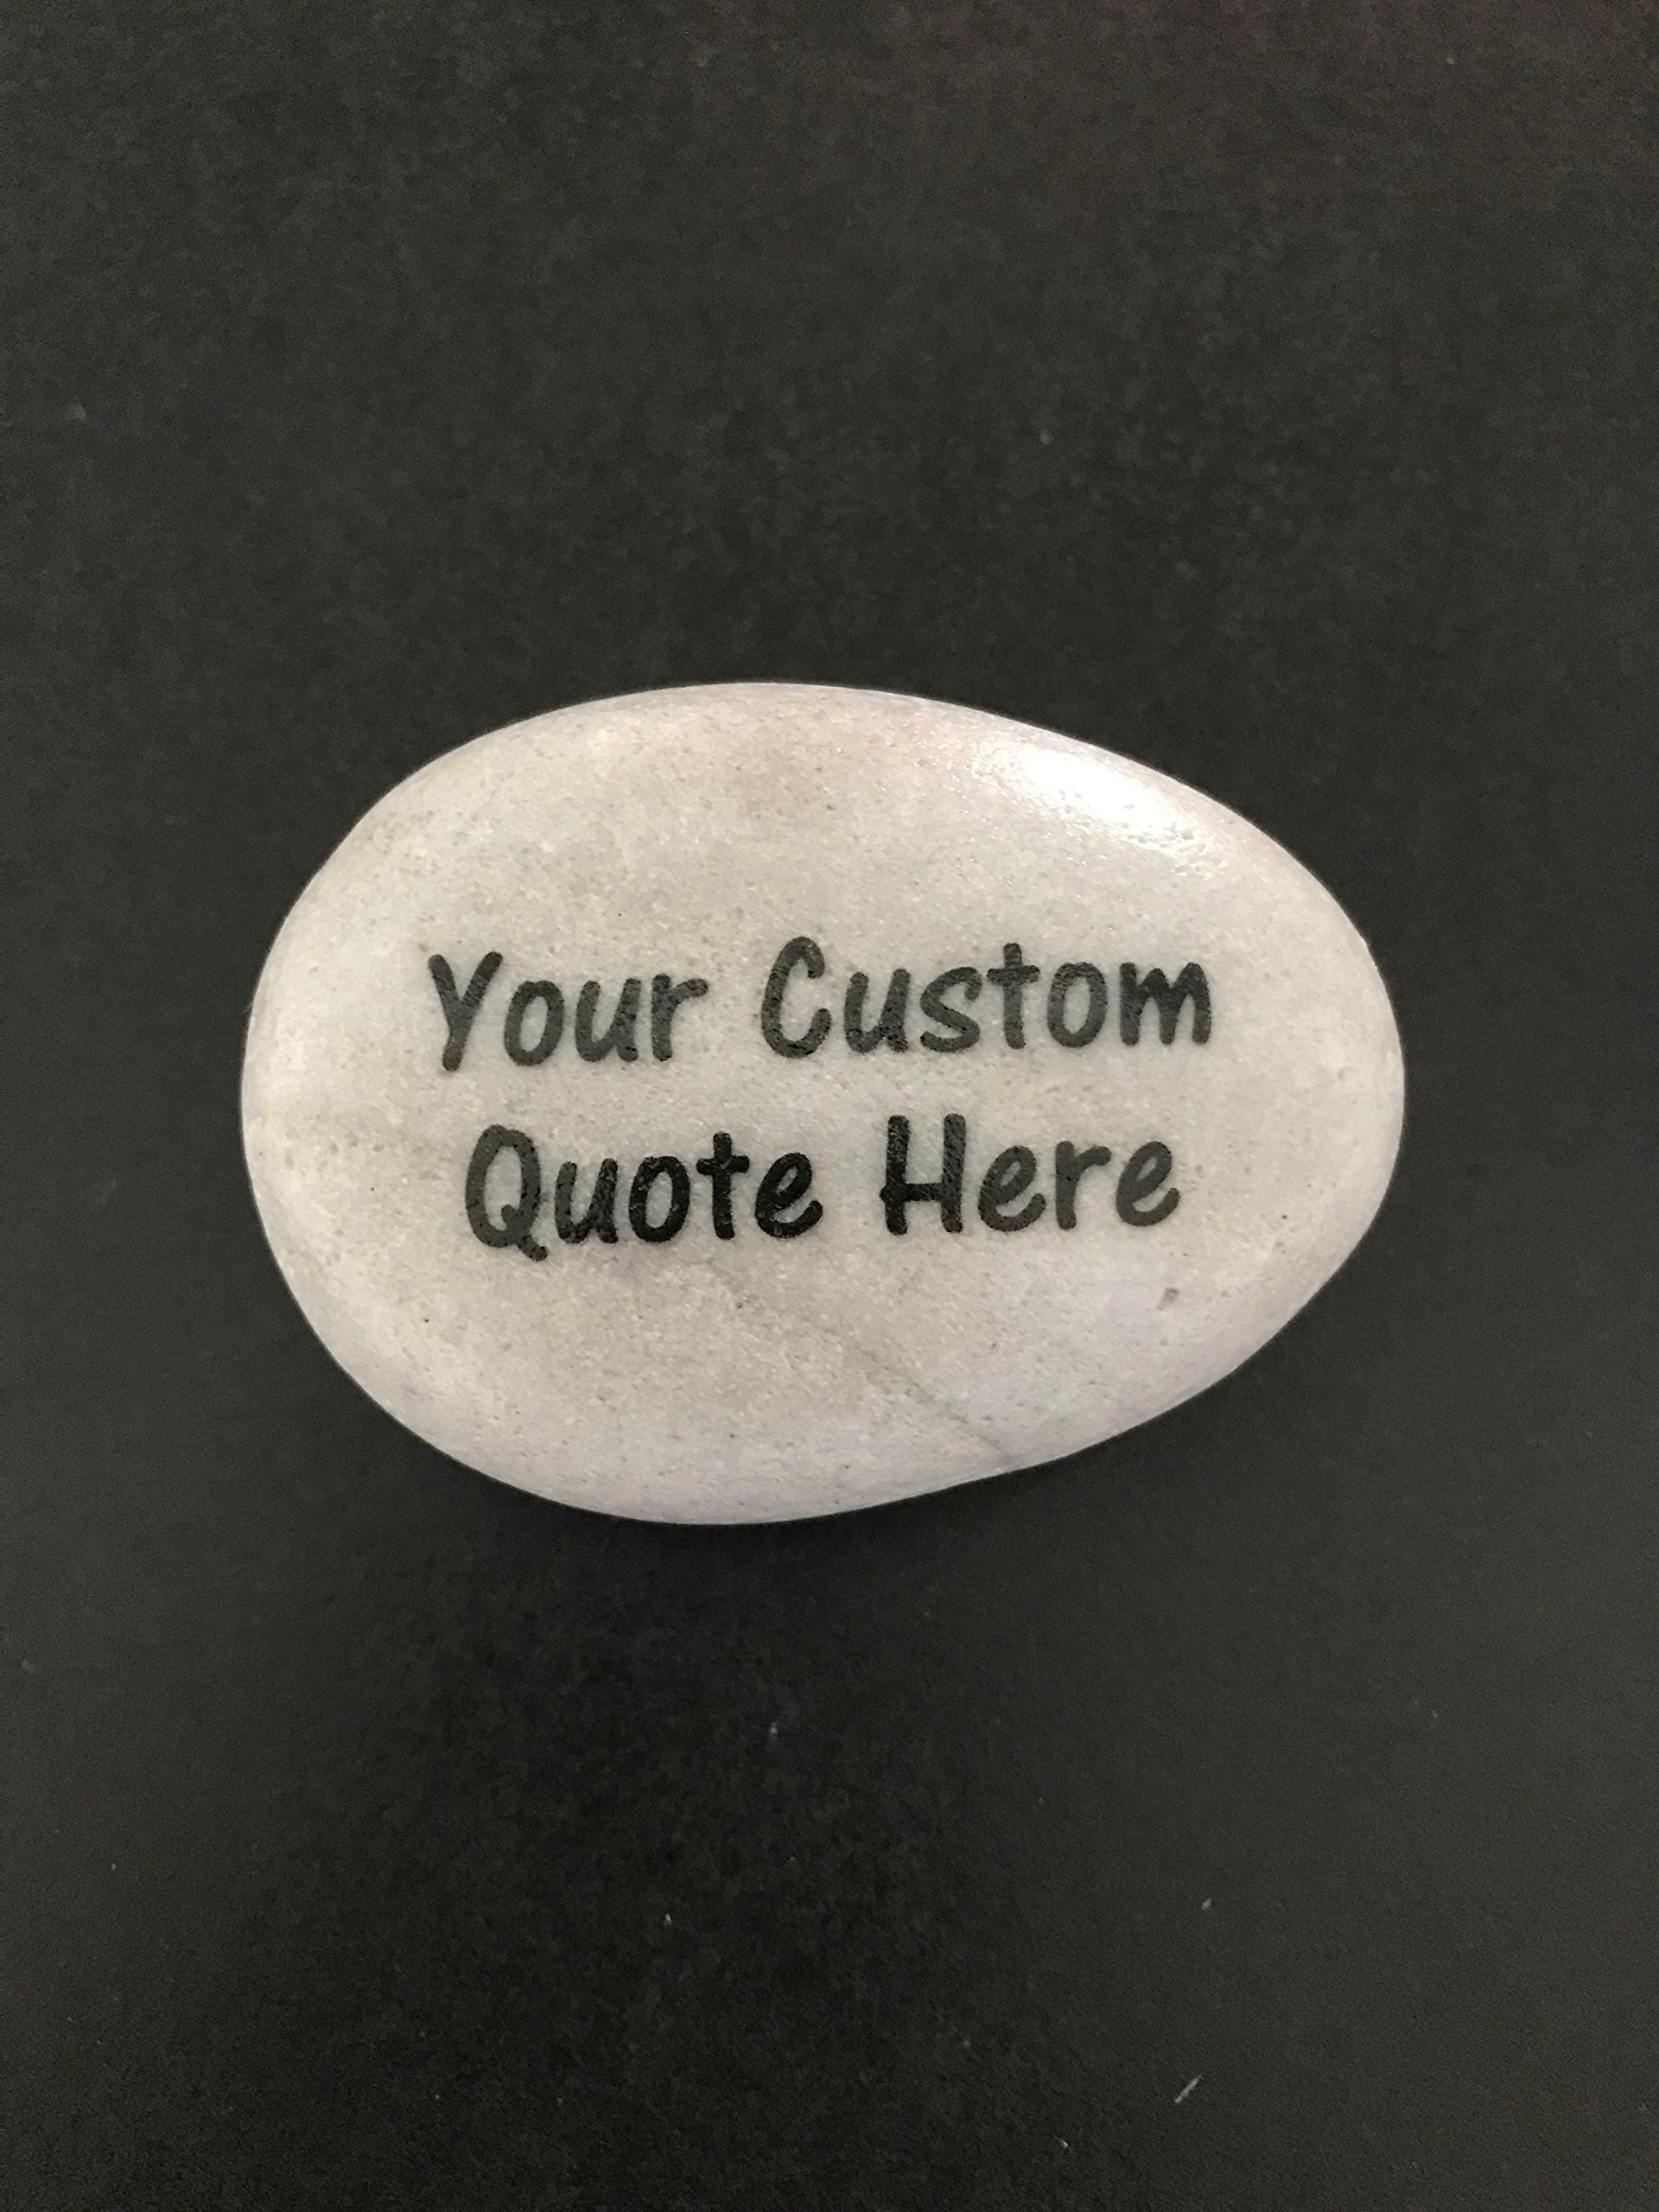 Personalized Custom Stone - You choose the saying